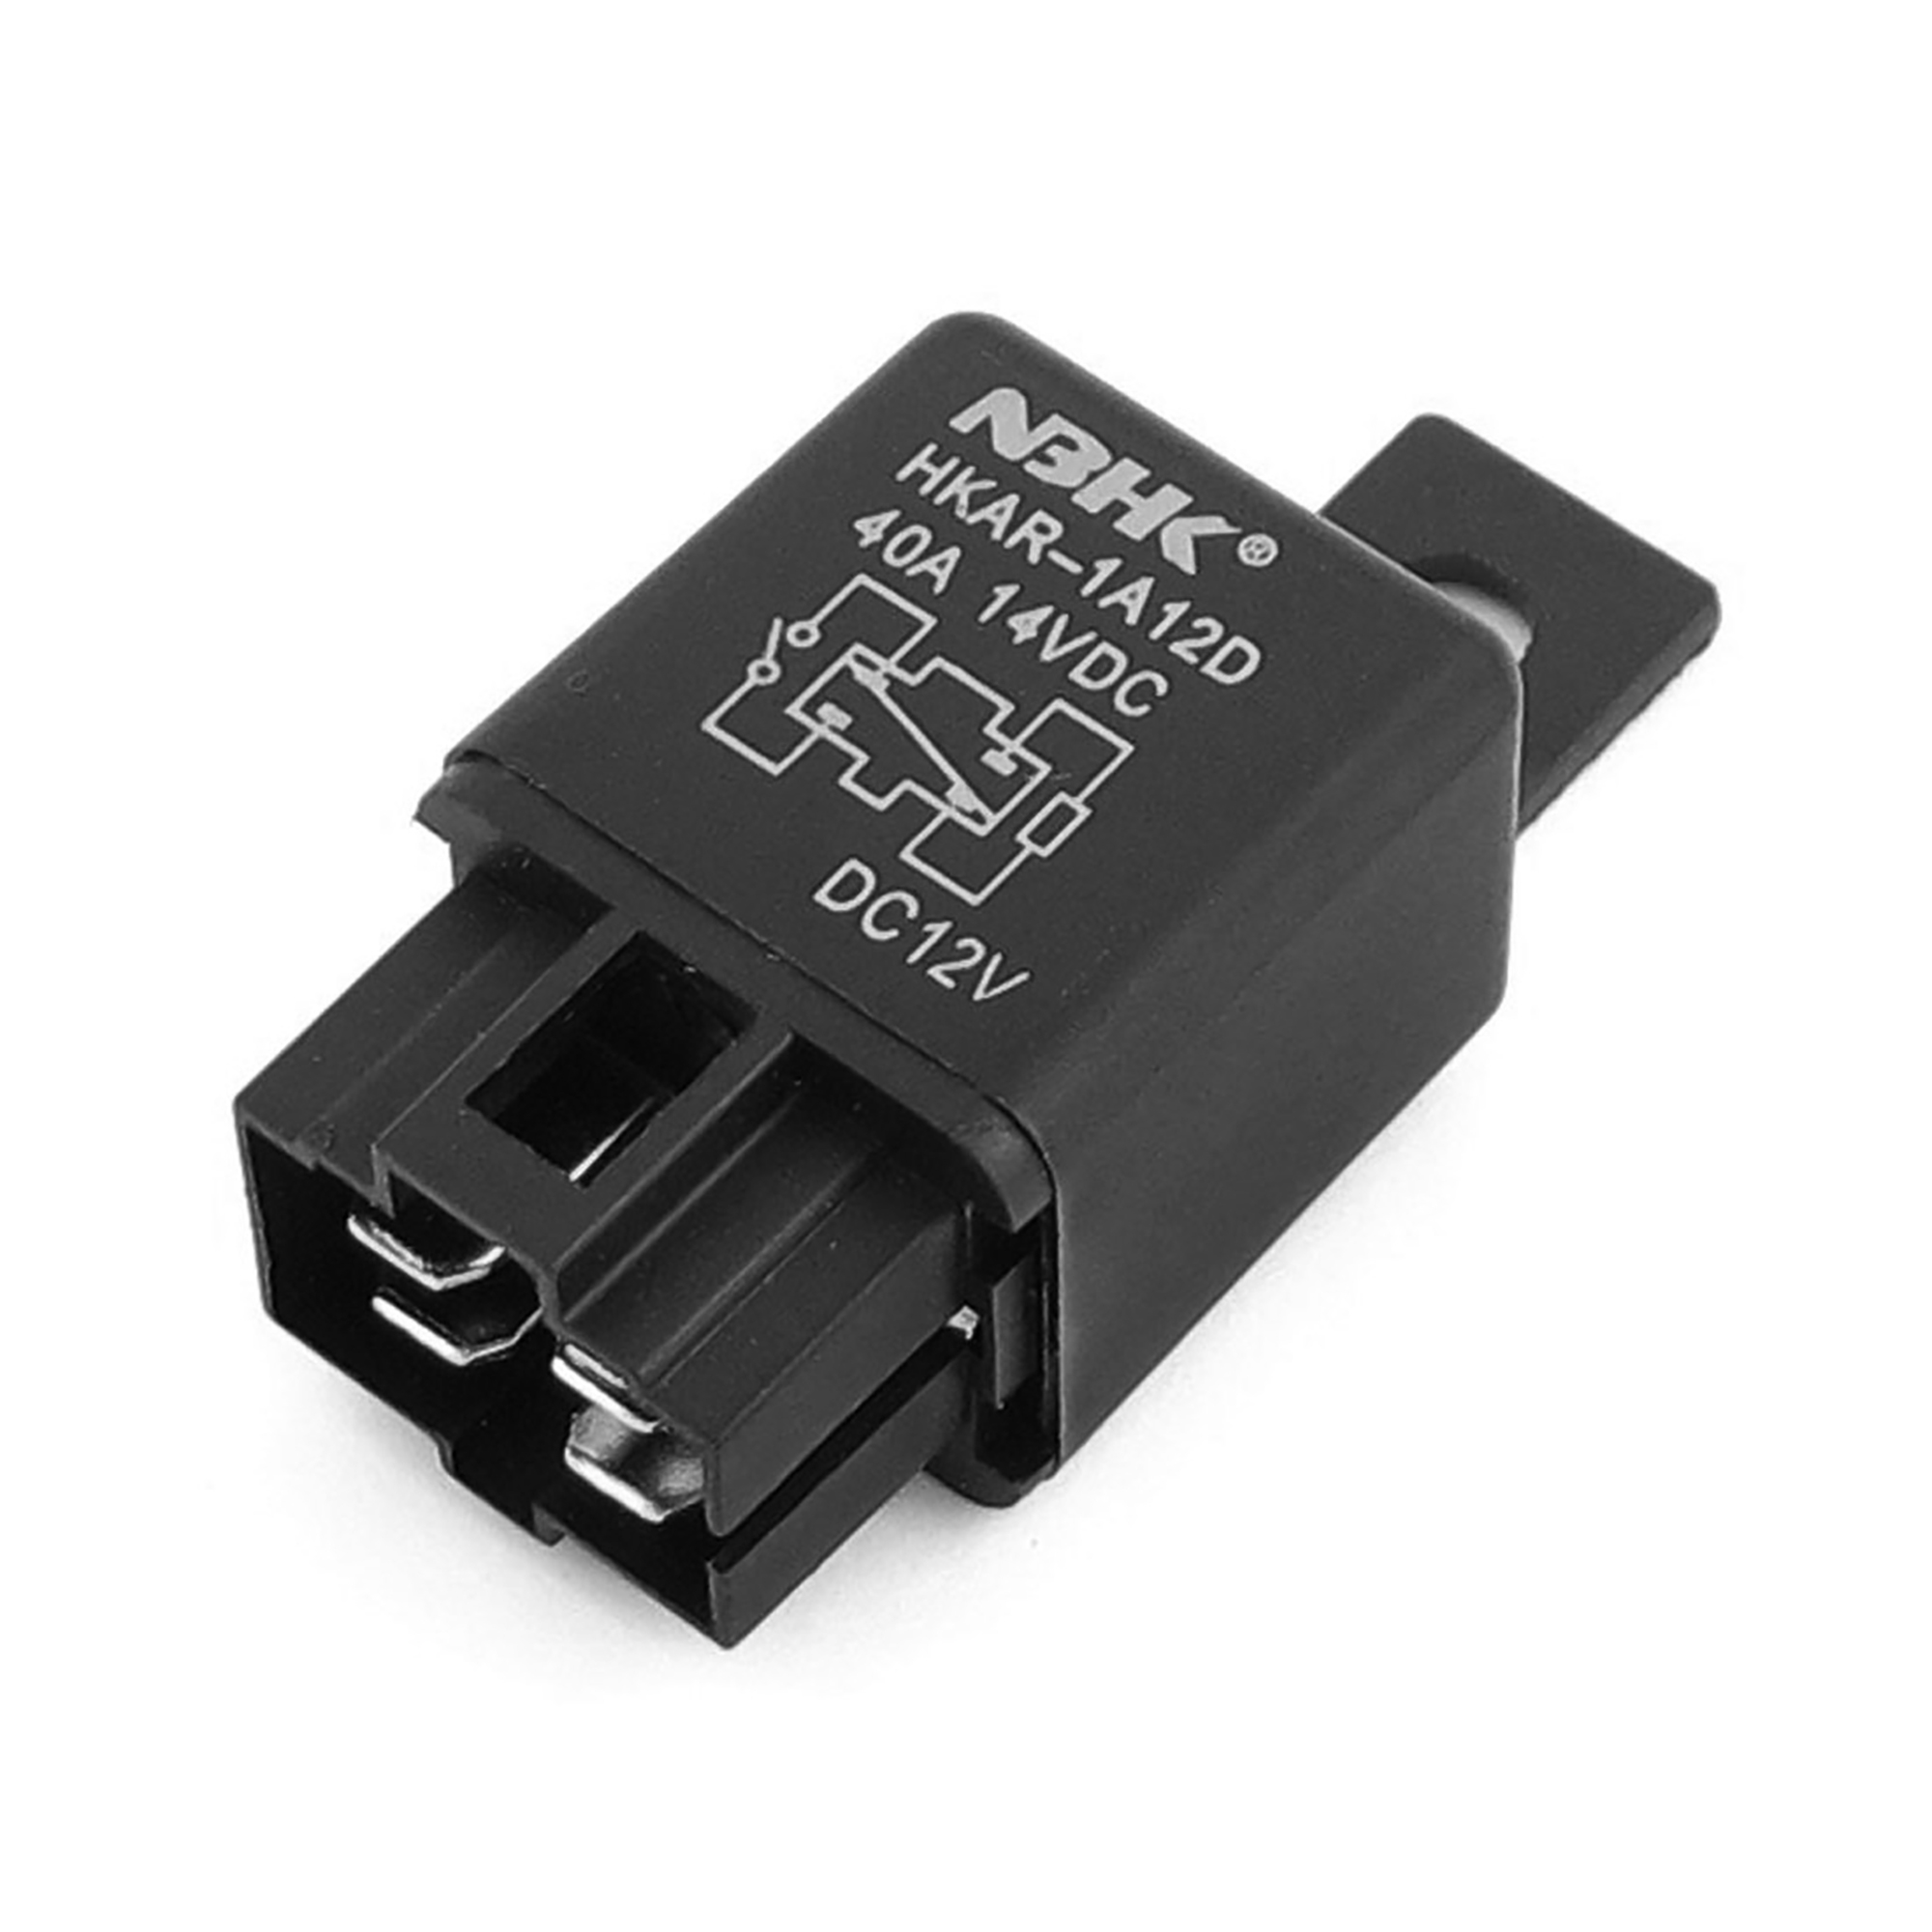 DC 12V 40A 4 Terminal SPDT Relay Replacement for Car